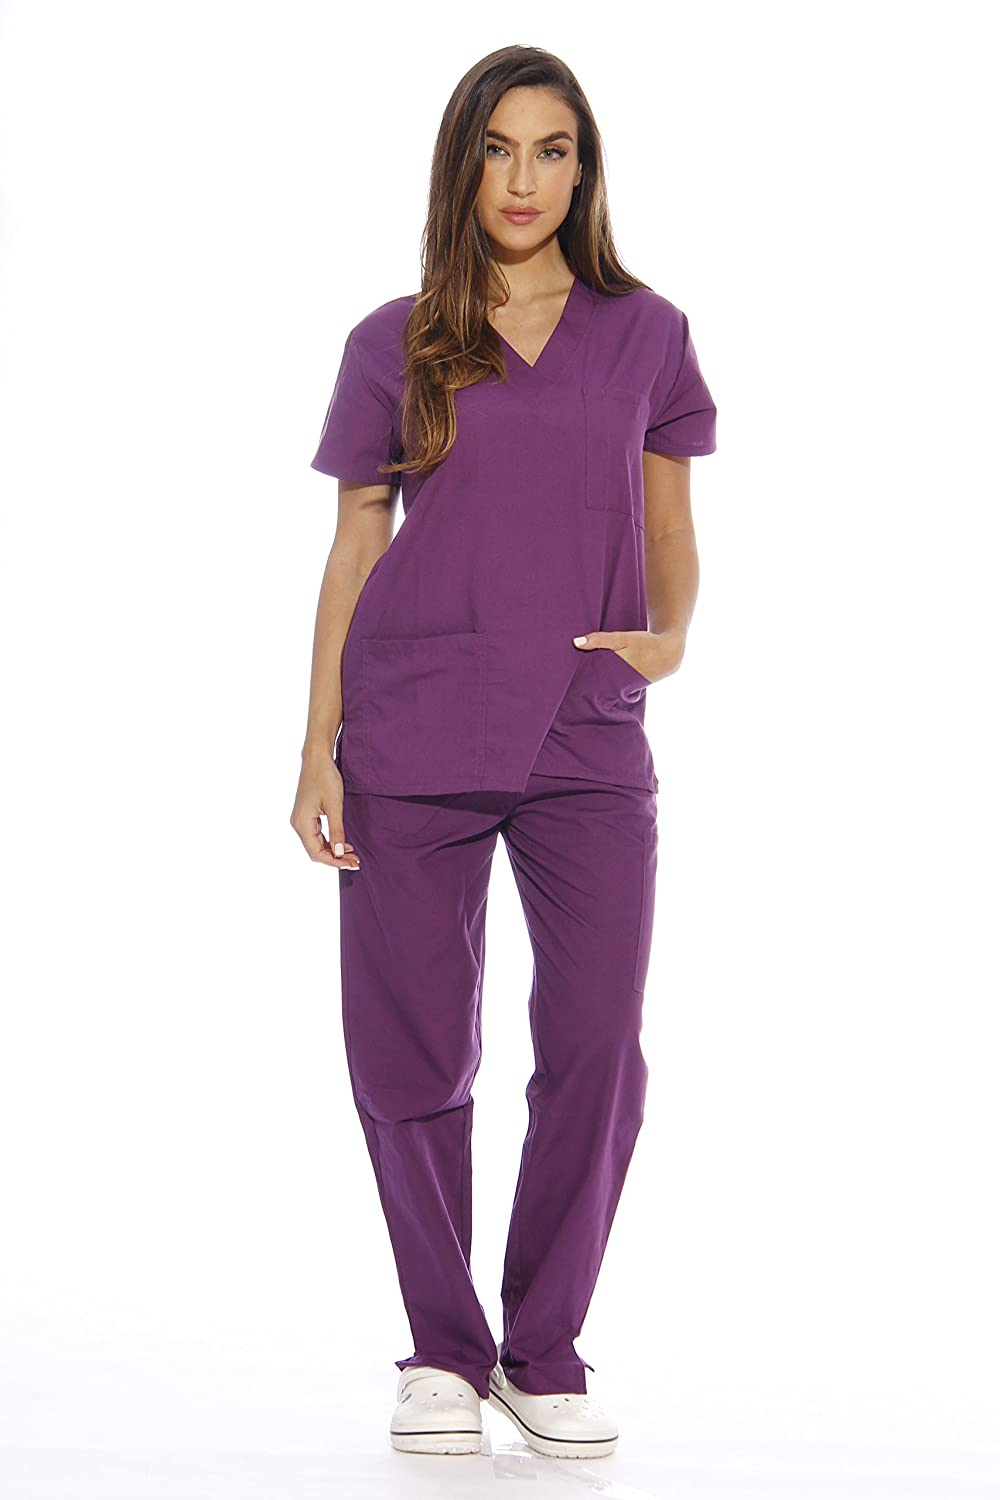 11ae13364d8 ALL DAY COMFORT: These medical scrubs for women feel soft on the skin, are  comfortably roomy, and are designed with a functional drawstring and  elastic band ...